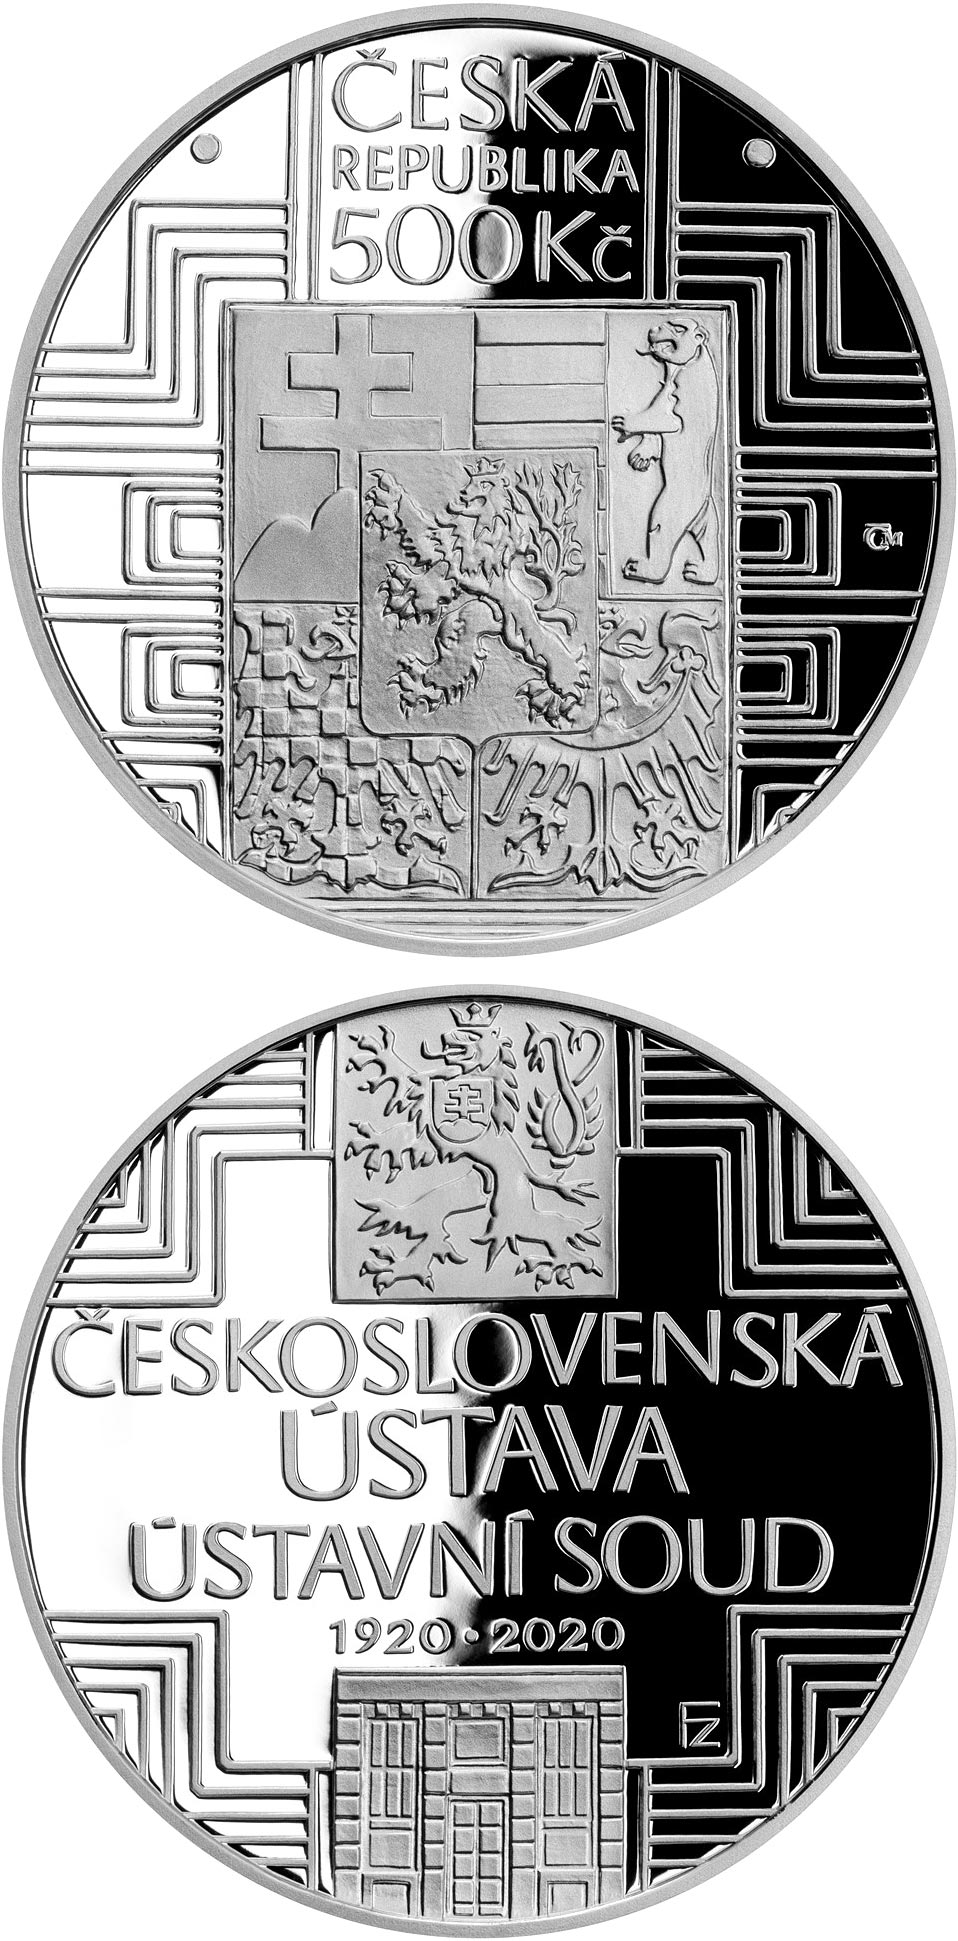 Image of 500 koruna coin - Adoption of Czechoslovak Constitution | Czech Republic 2020.  The Silver coin is of Proof, BU quality.